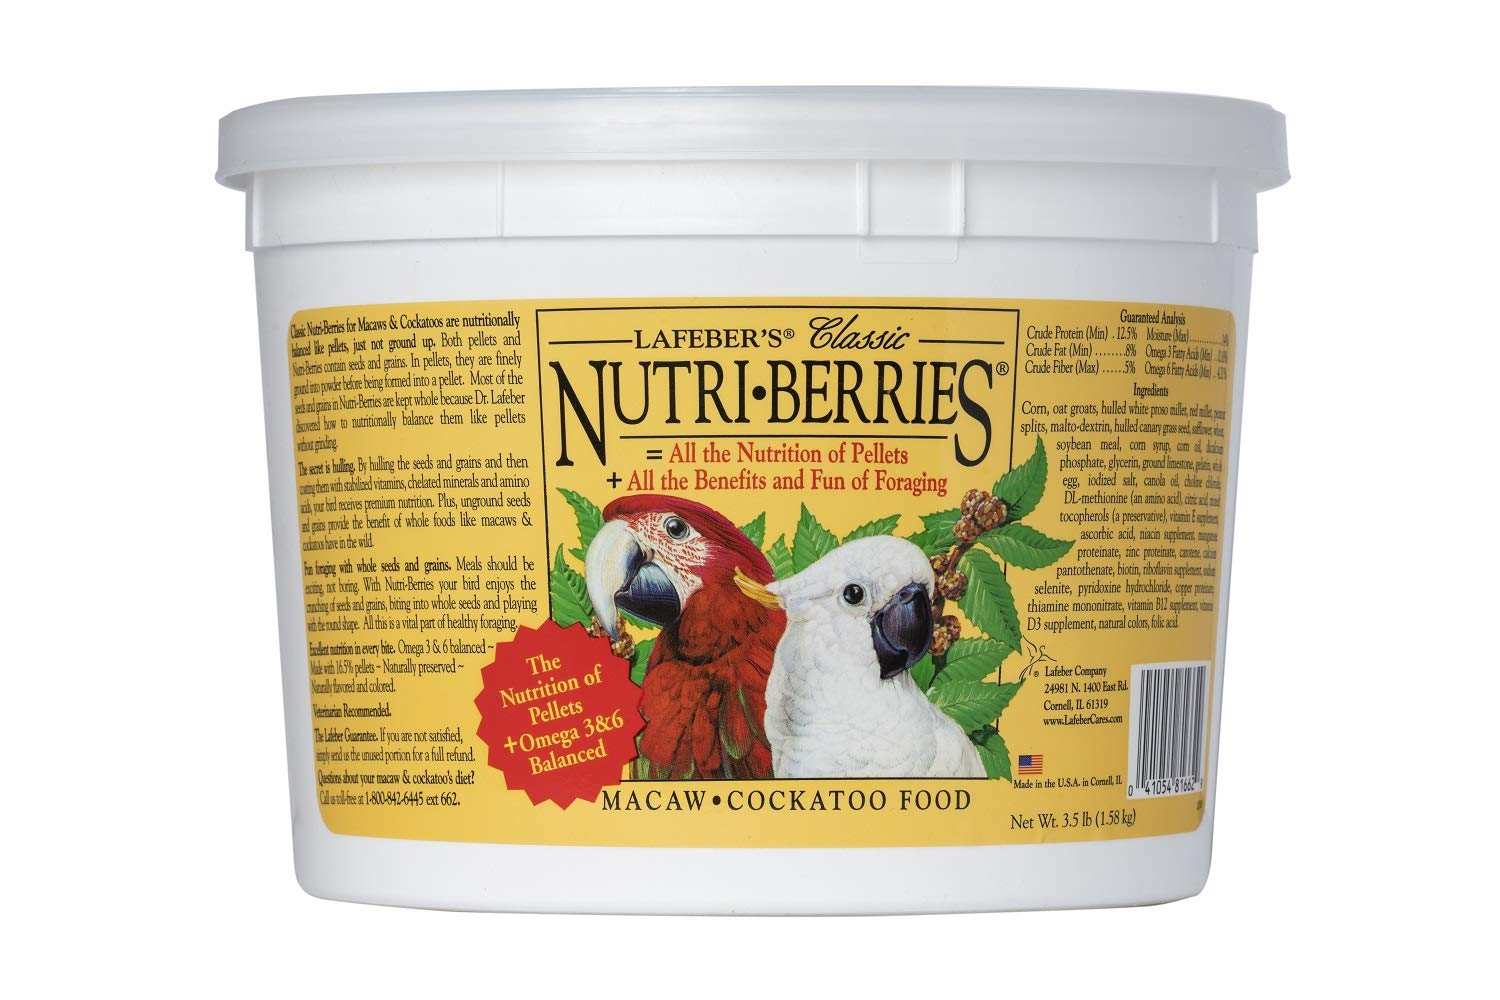 Lafeber's Classic Nutri-Berries for Macaw / Cockatoo 3.5 lb. Tub by LAFEBER'S